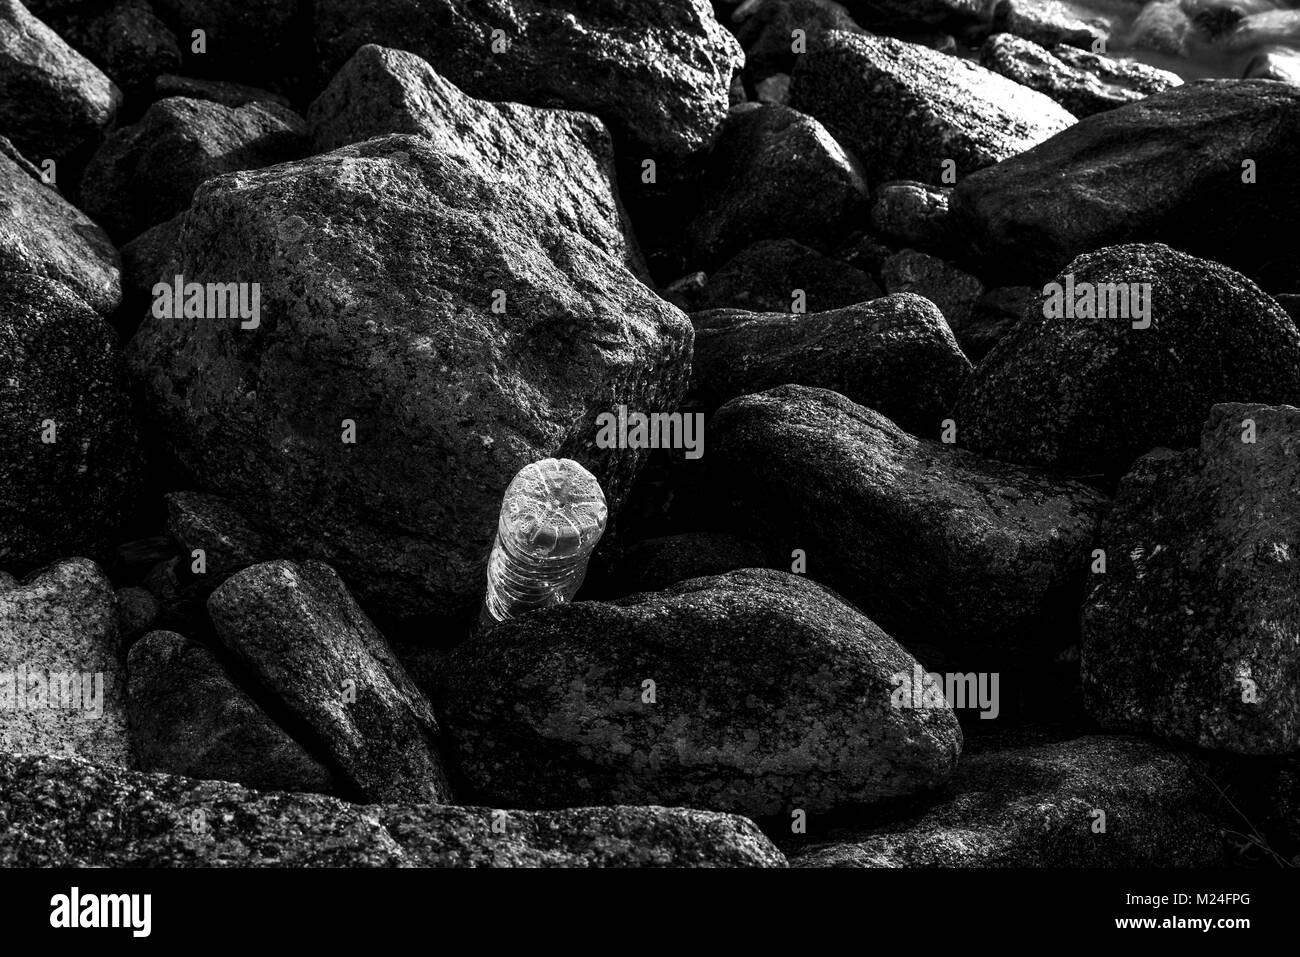 A solitary plastic bottle caught amongst the rocks as the morning sun refracts through it's creases and condensation. - Stock Image